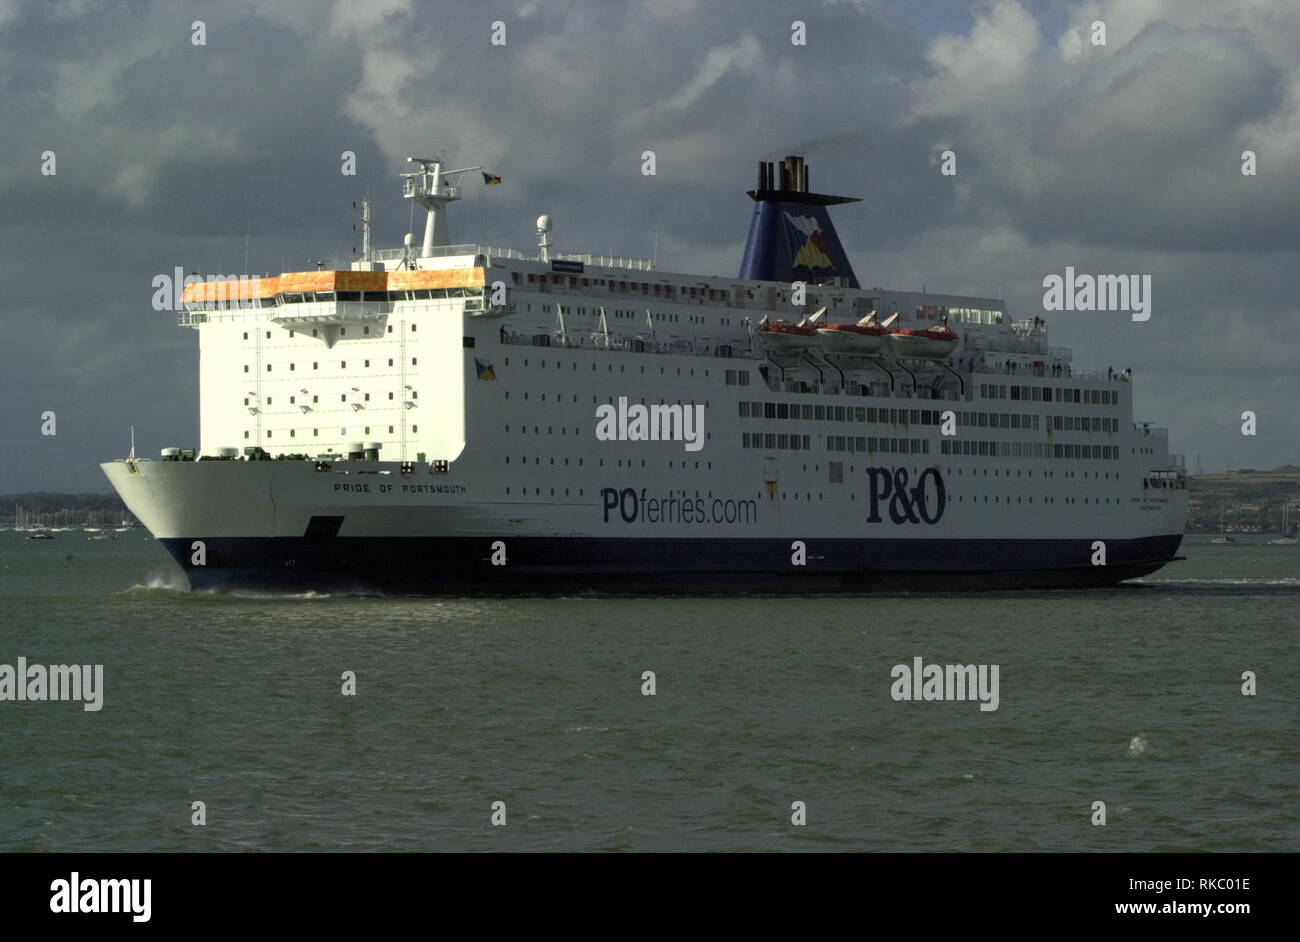 AJAXNETPHOTO. OCTOBER, 2004. PORTSMOUTH, ENGLAND. - OUTWARD BOUND - P&O FERRIES PRIDE OF PORTSMOUTH LEAVING HARBOUR.  PHOTO:JONATHAN EASTLAND/AJAX REF:D40510_1024 - Stock Image